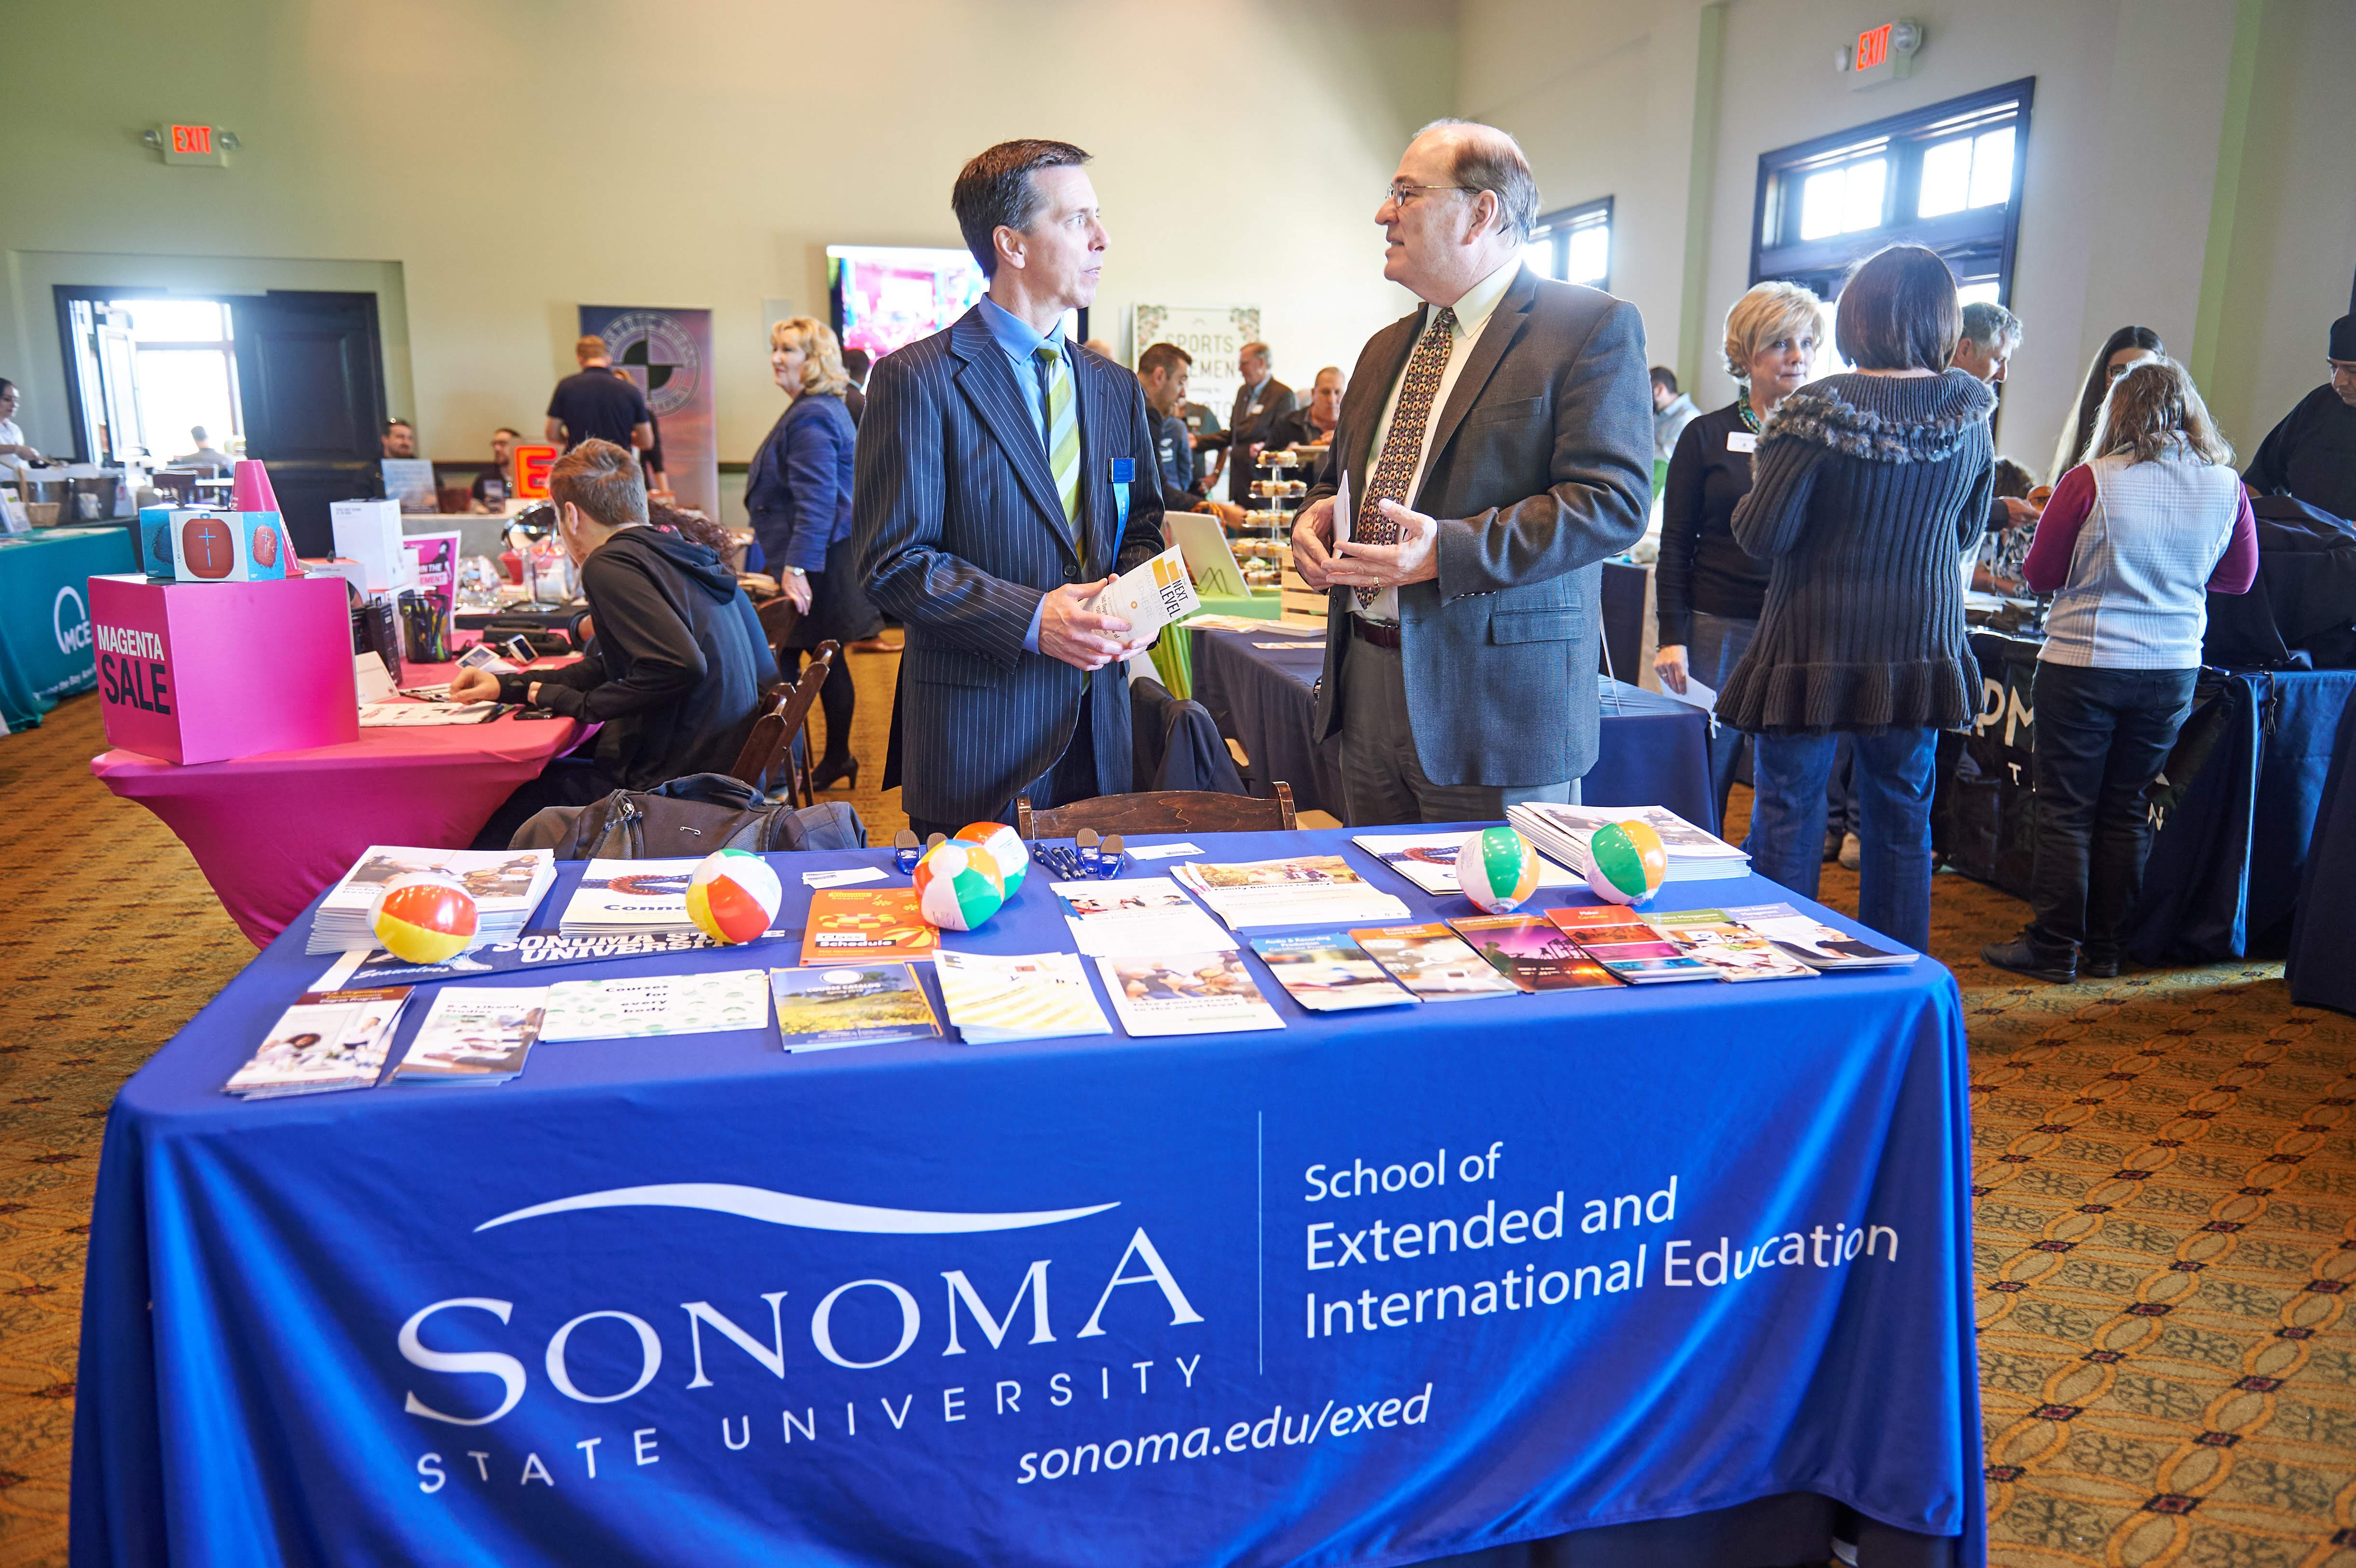 North Bay BUsiness Expo Tradesho Showcase San Rafael Novato Chamber Sonoma State